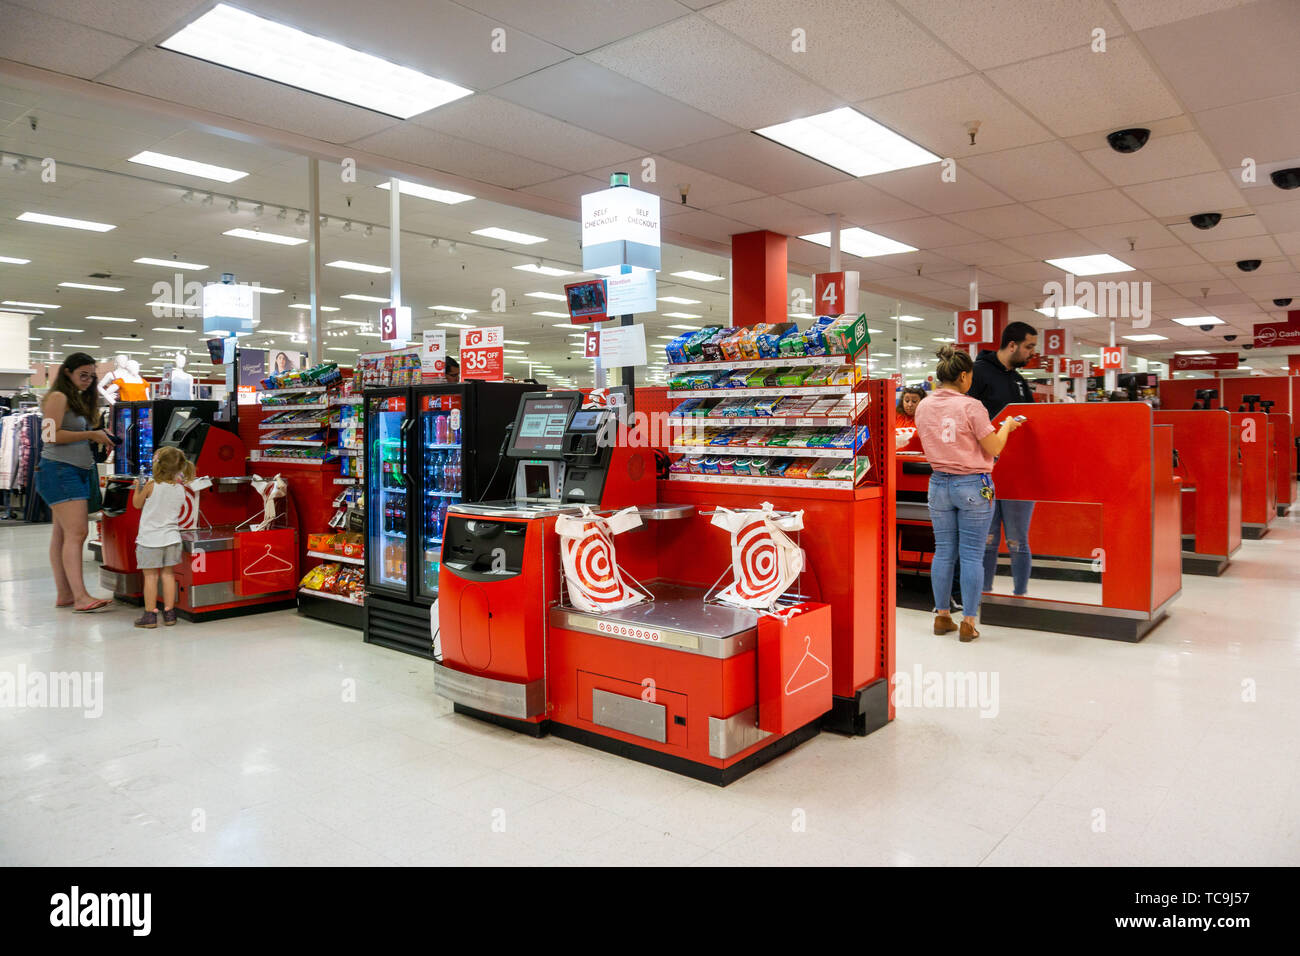 Target Store Interior High Resolution Stock Photography And Images Alamy